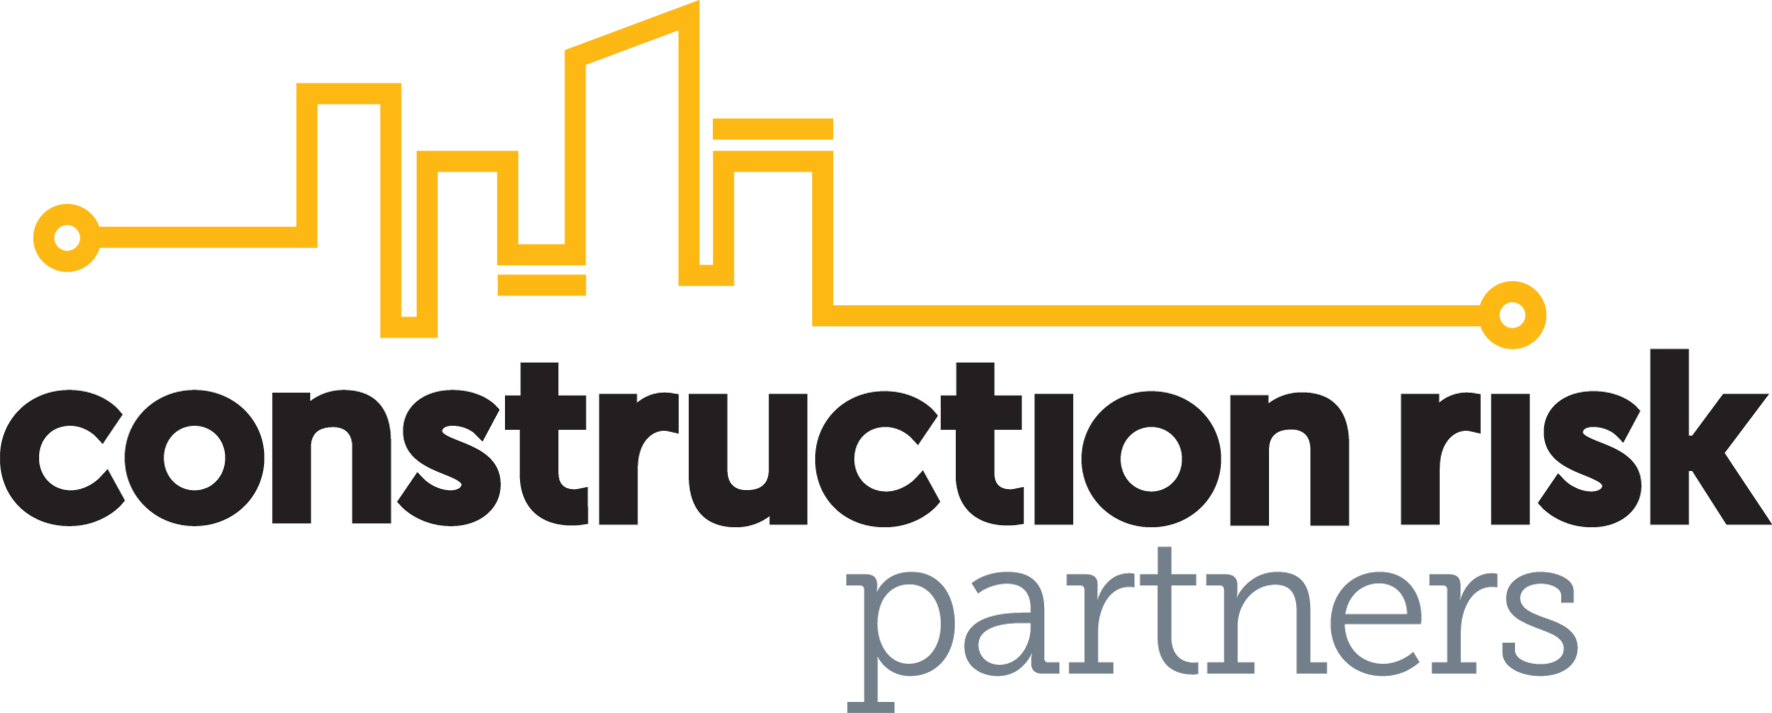 Construction Risk Partners Logo